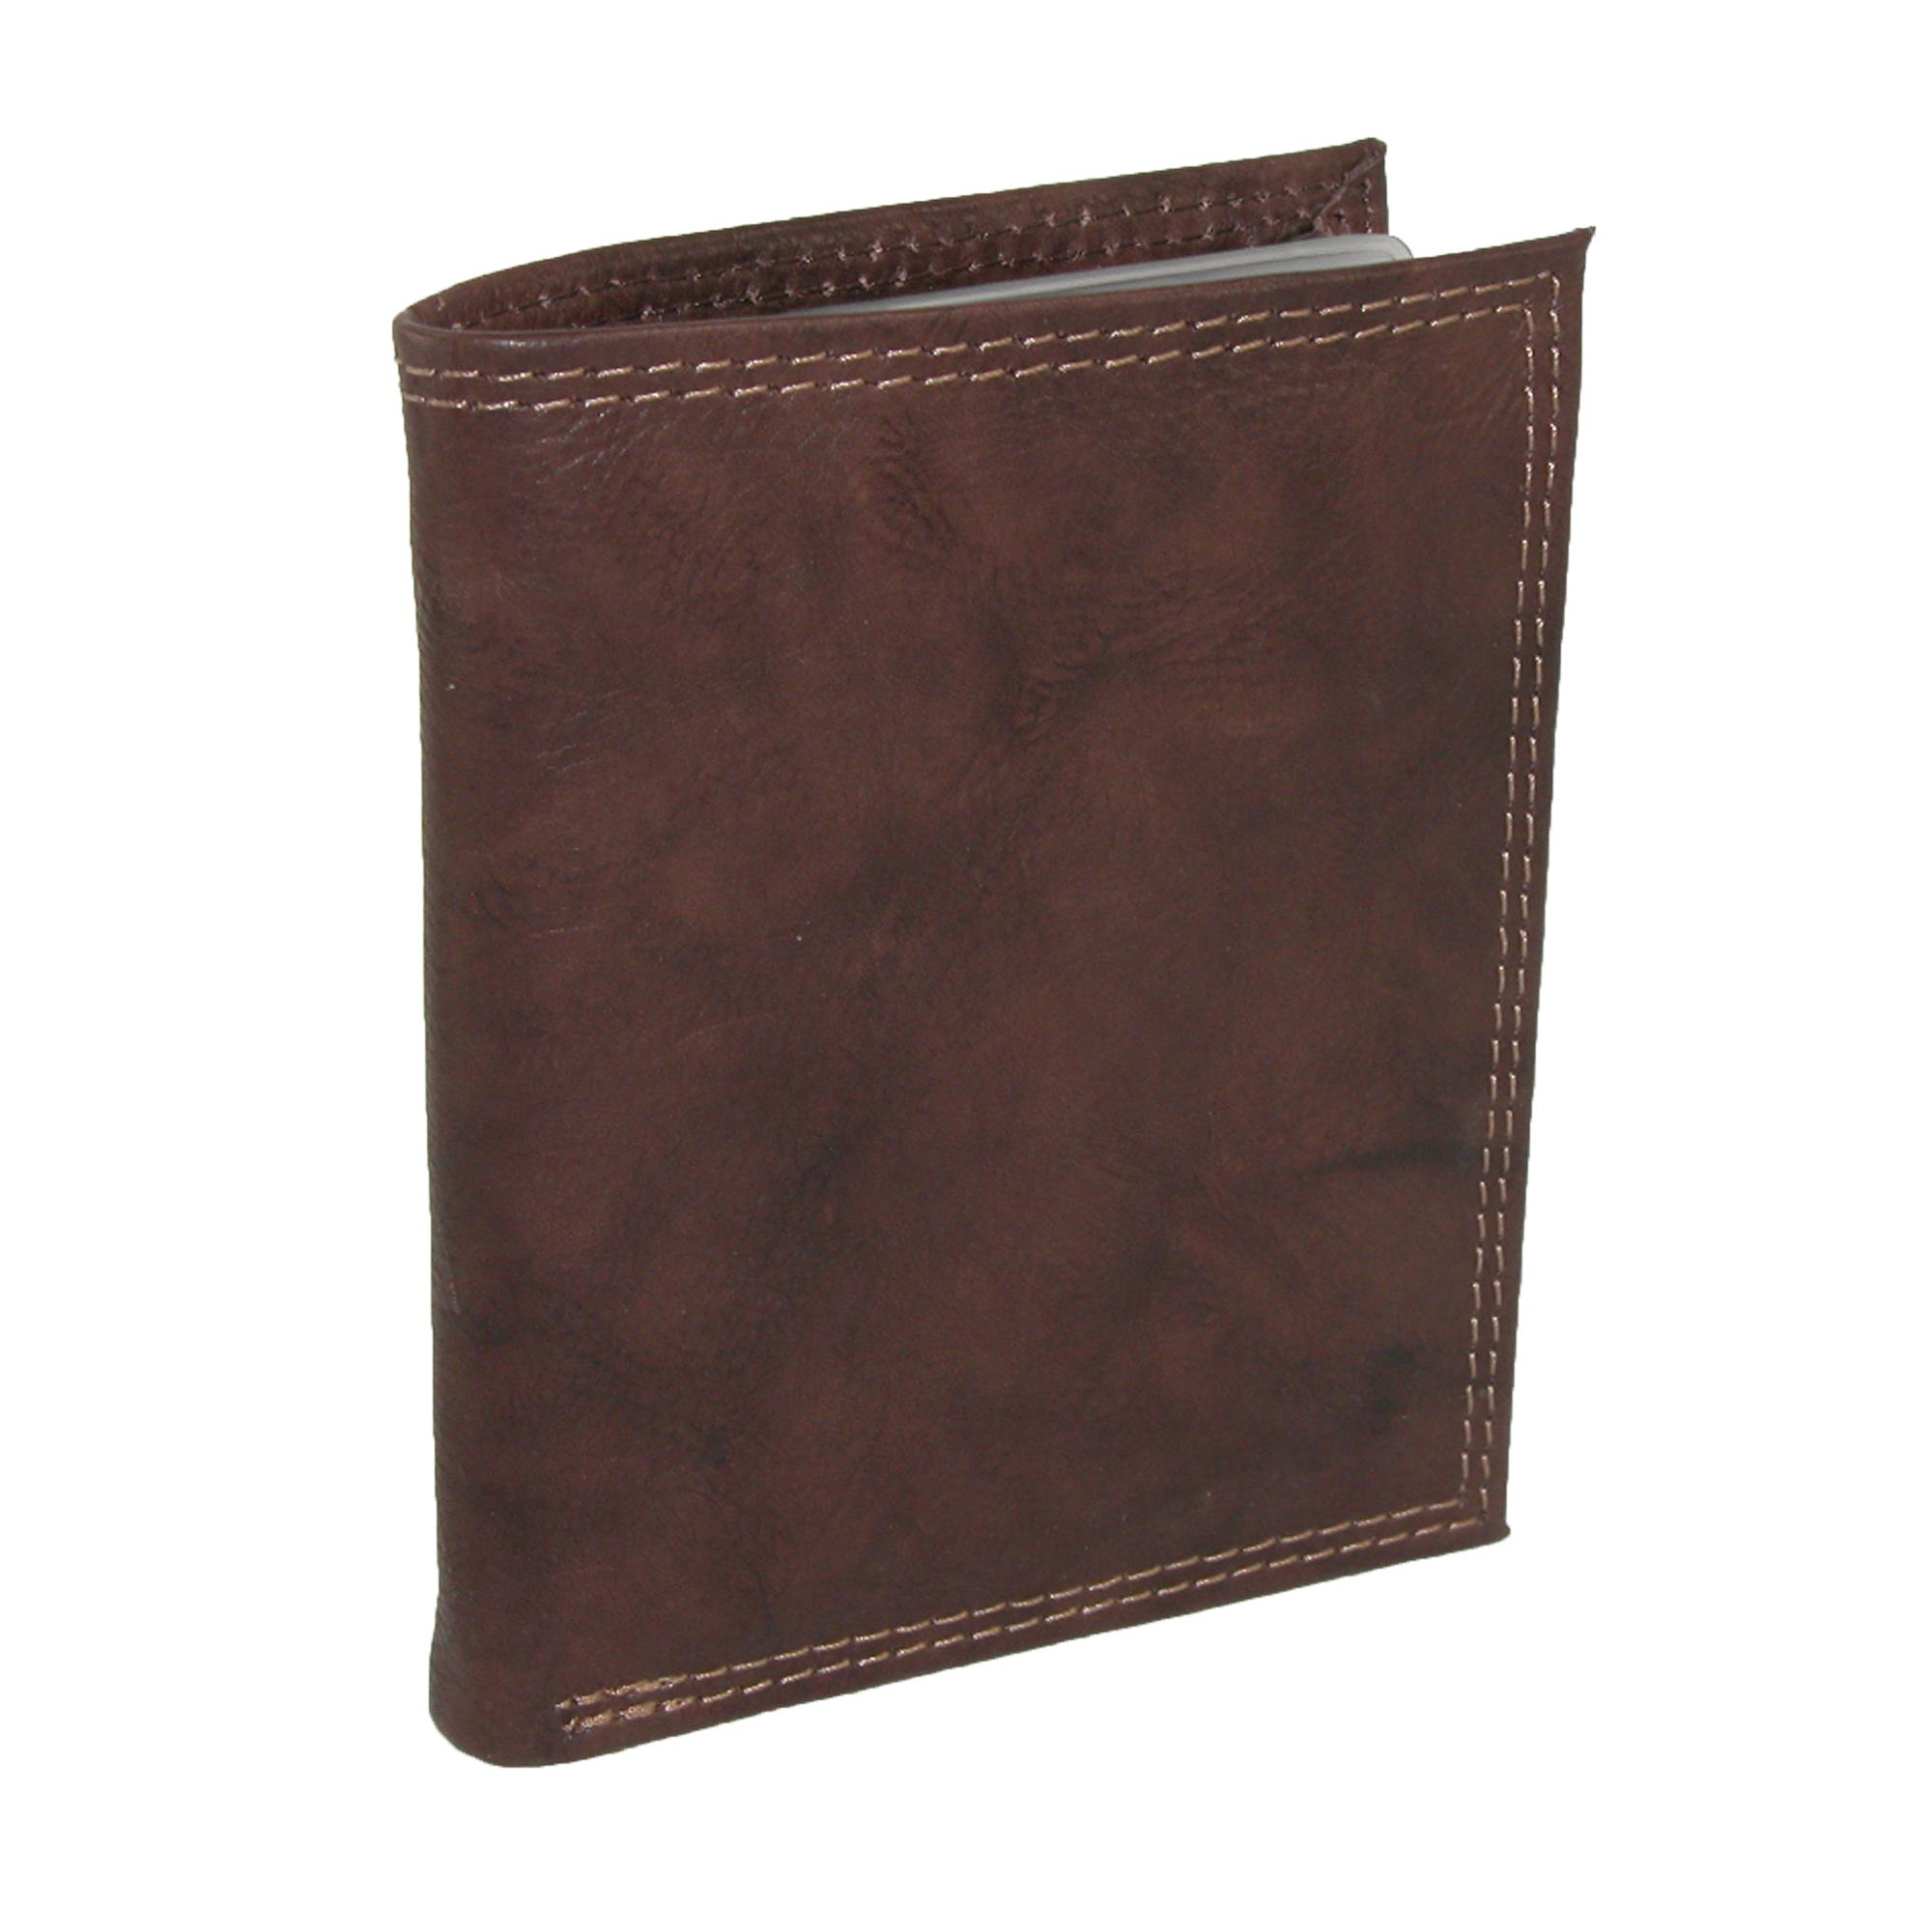 Buxton_Mens_Leather_Credit_Card_Wallet_